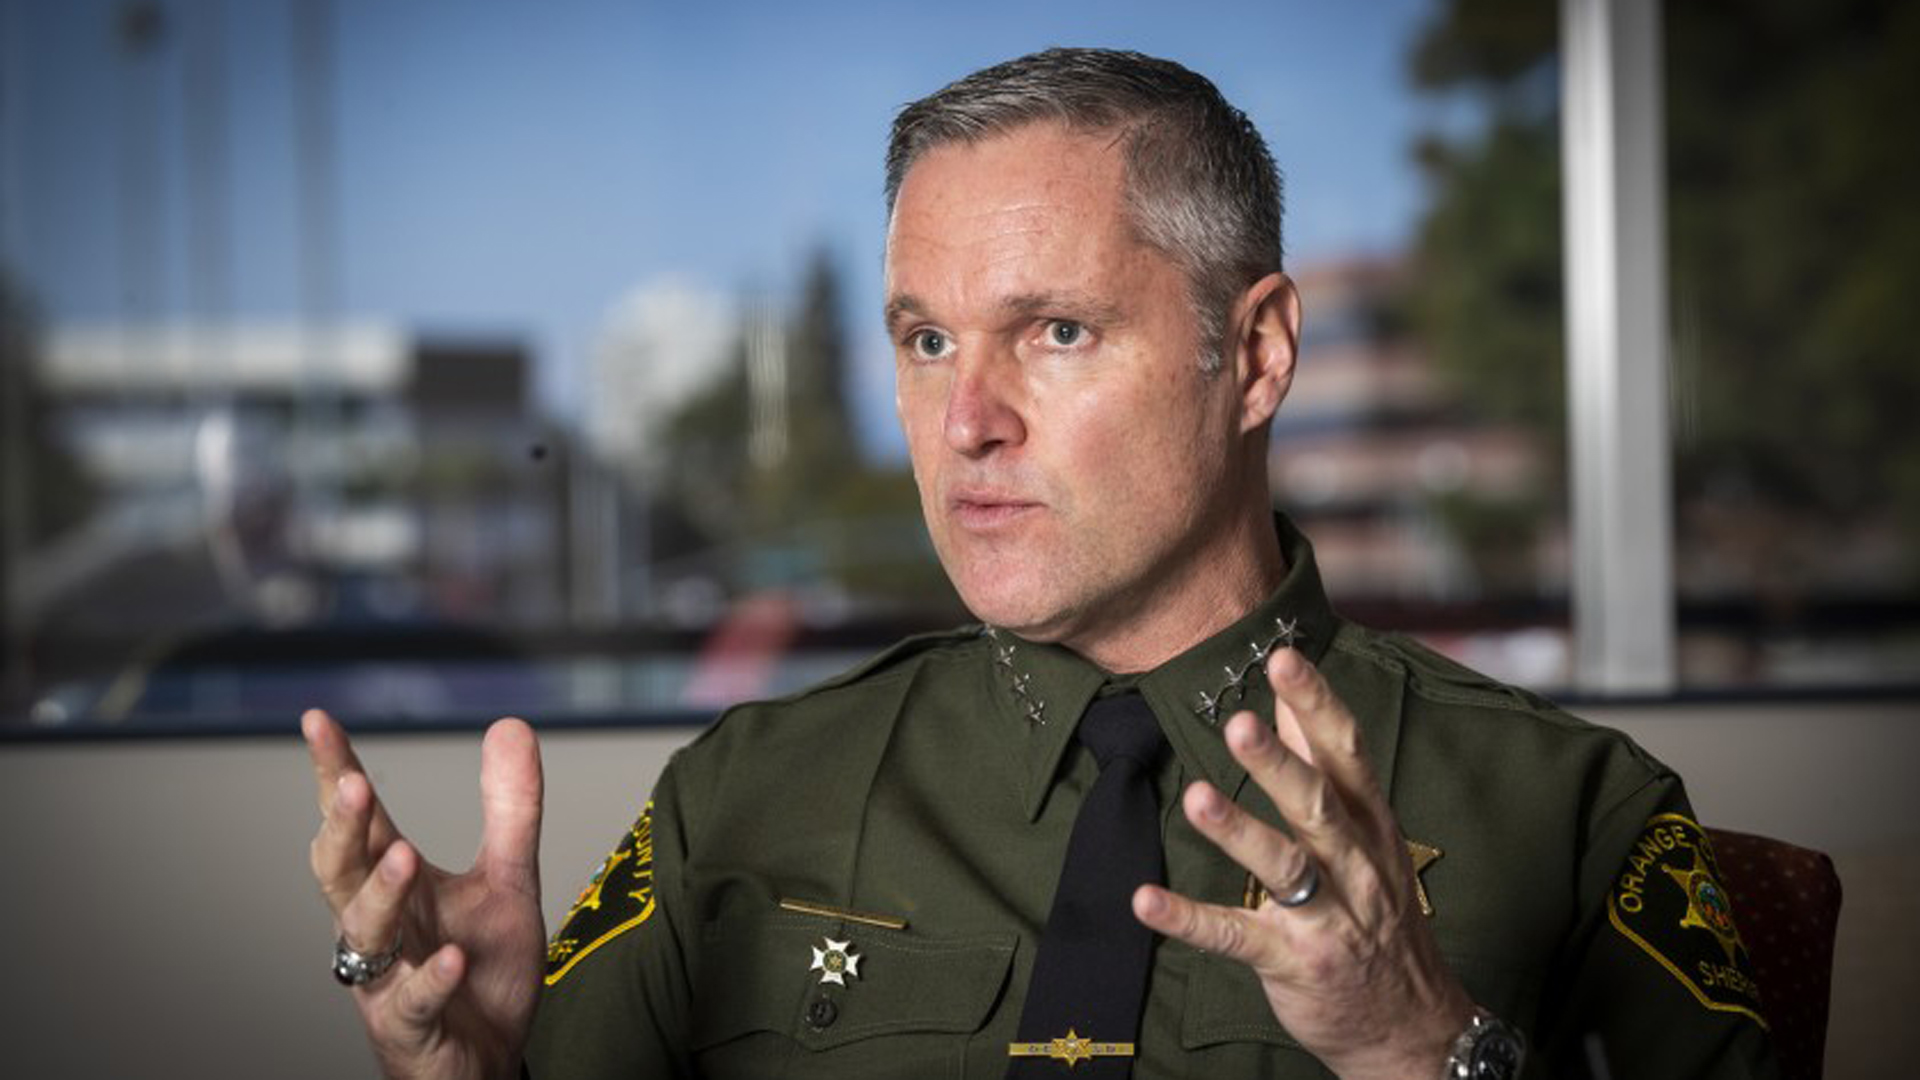 Orange County Sheriff' Don Barnes (Credit: Allen J. Chaben/Los Angeles Times)